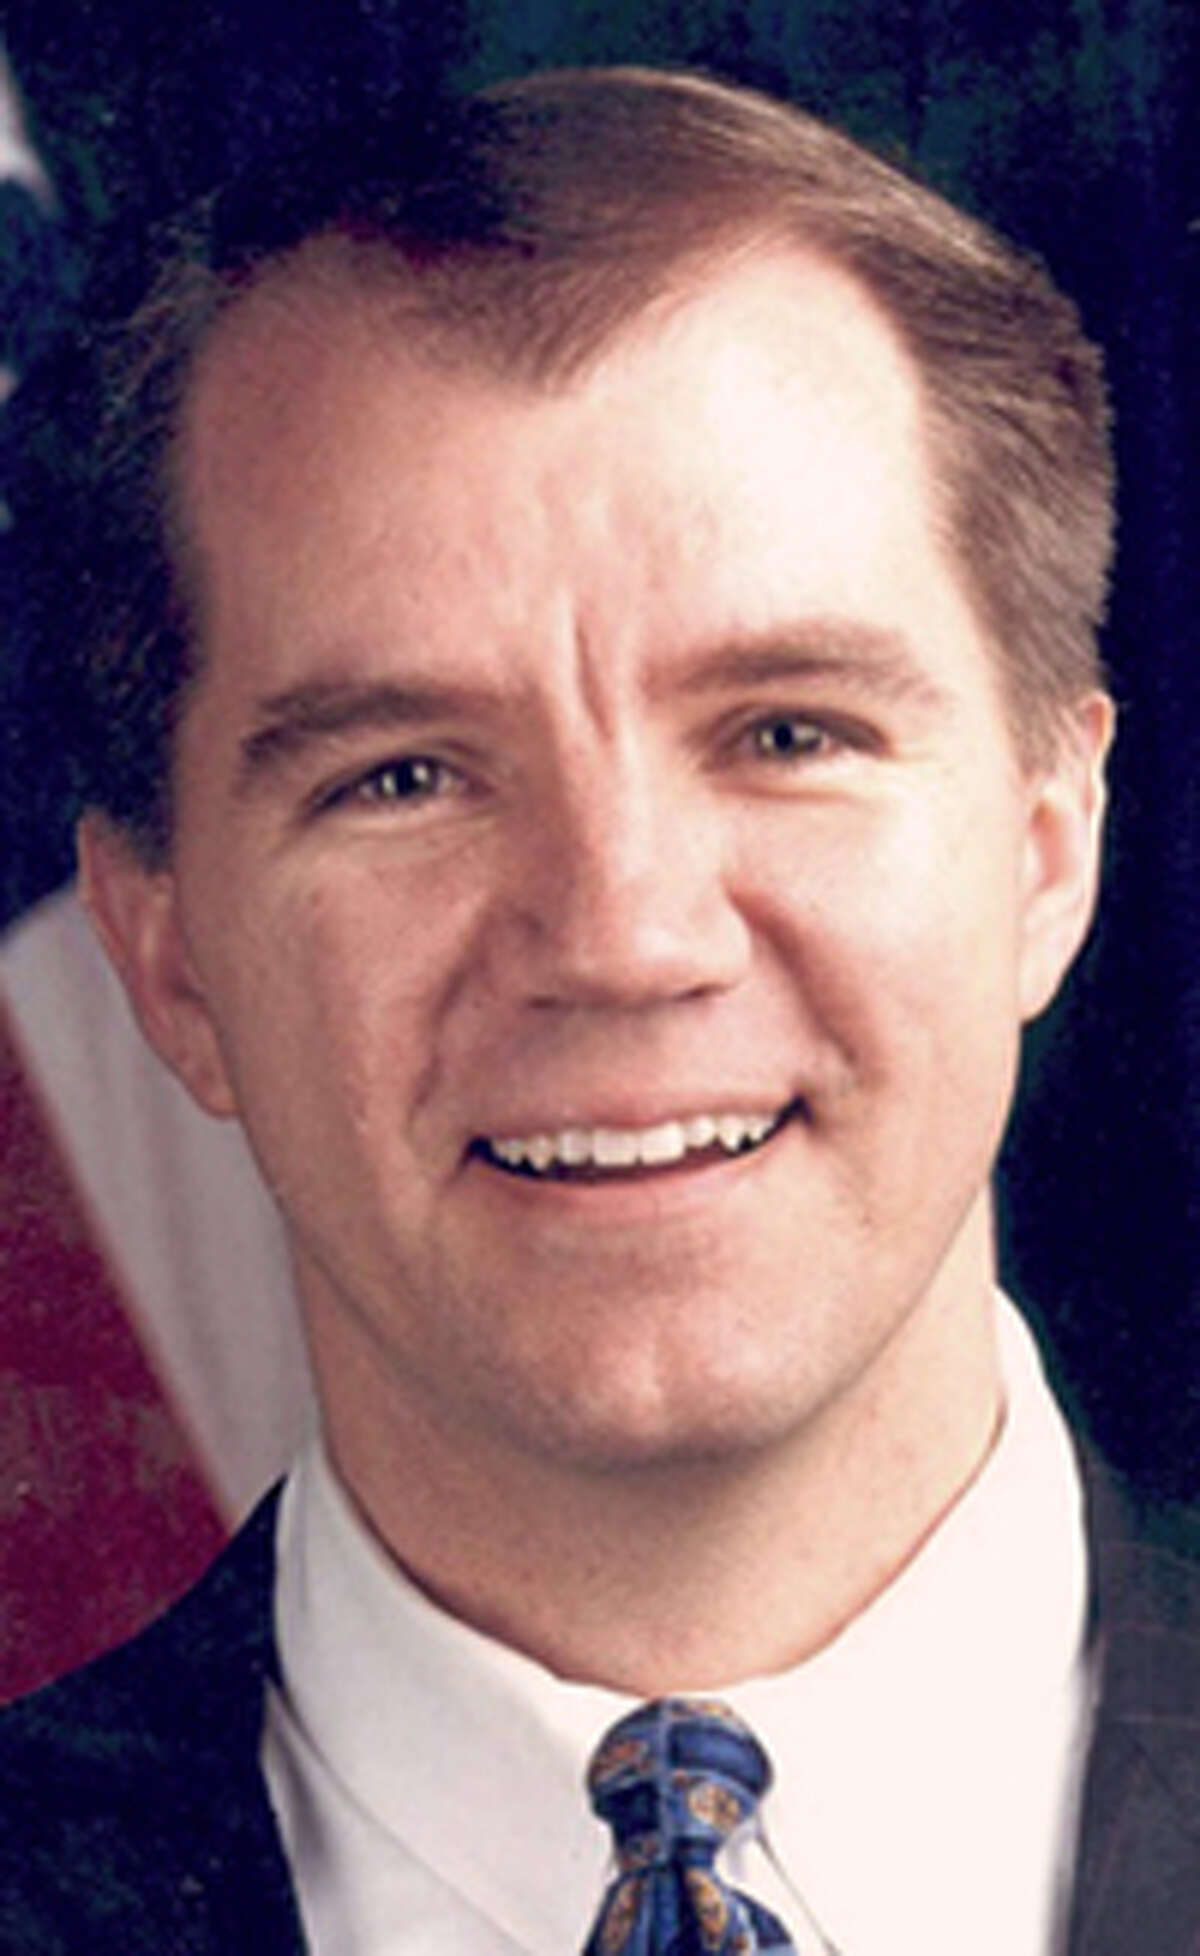 Don Willett has served on the Supreme Court of Texas since 2005.